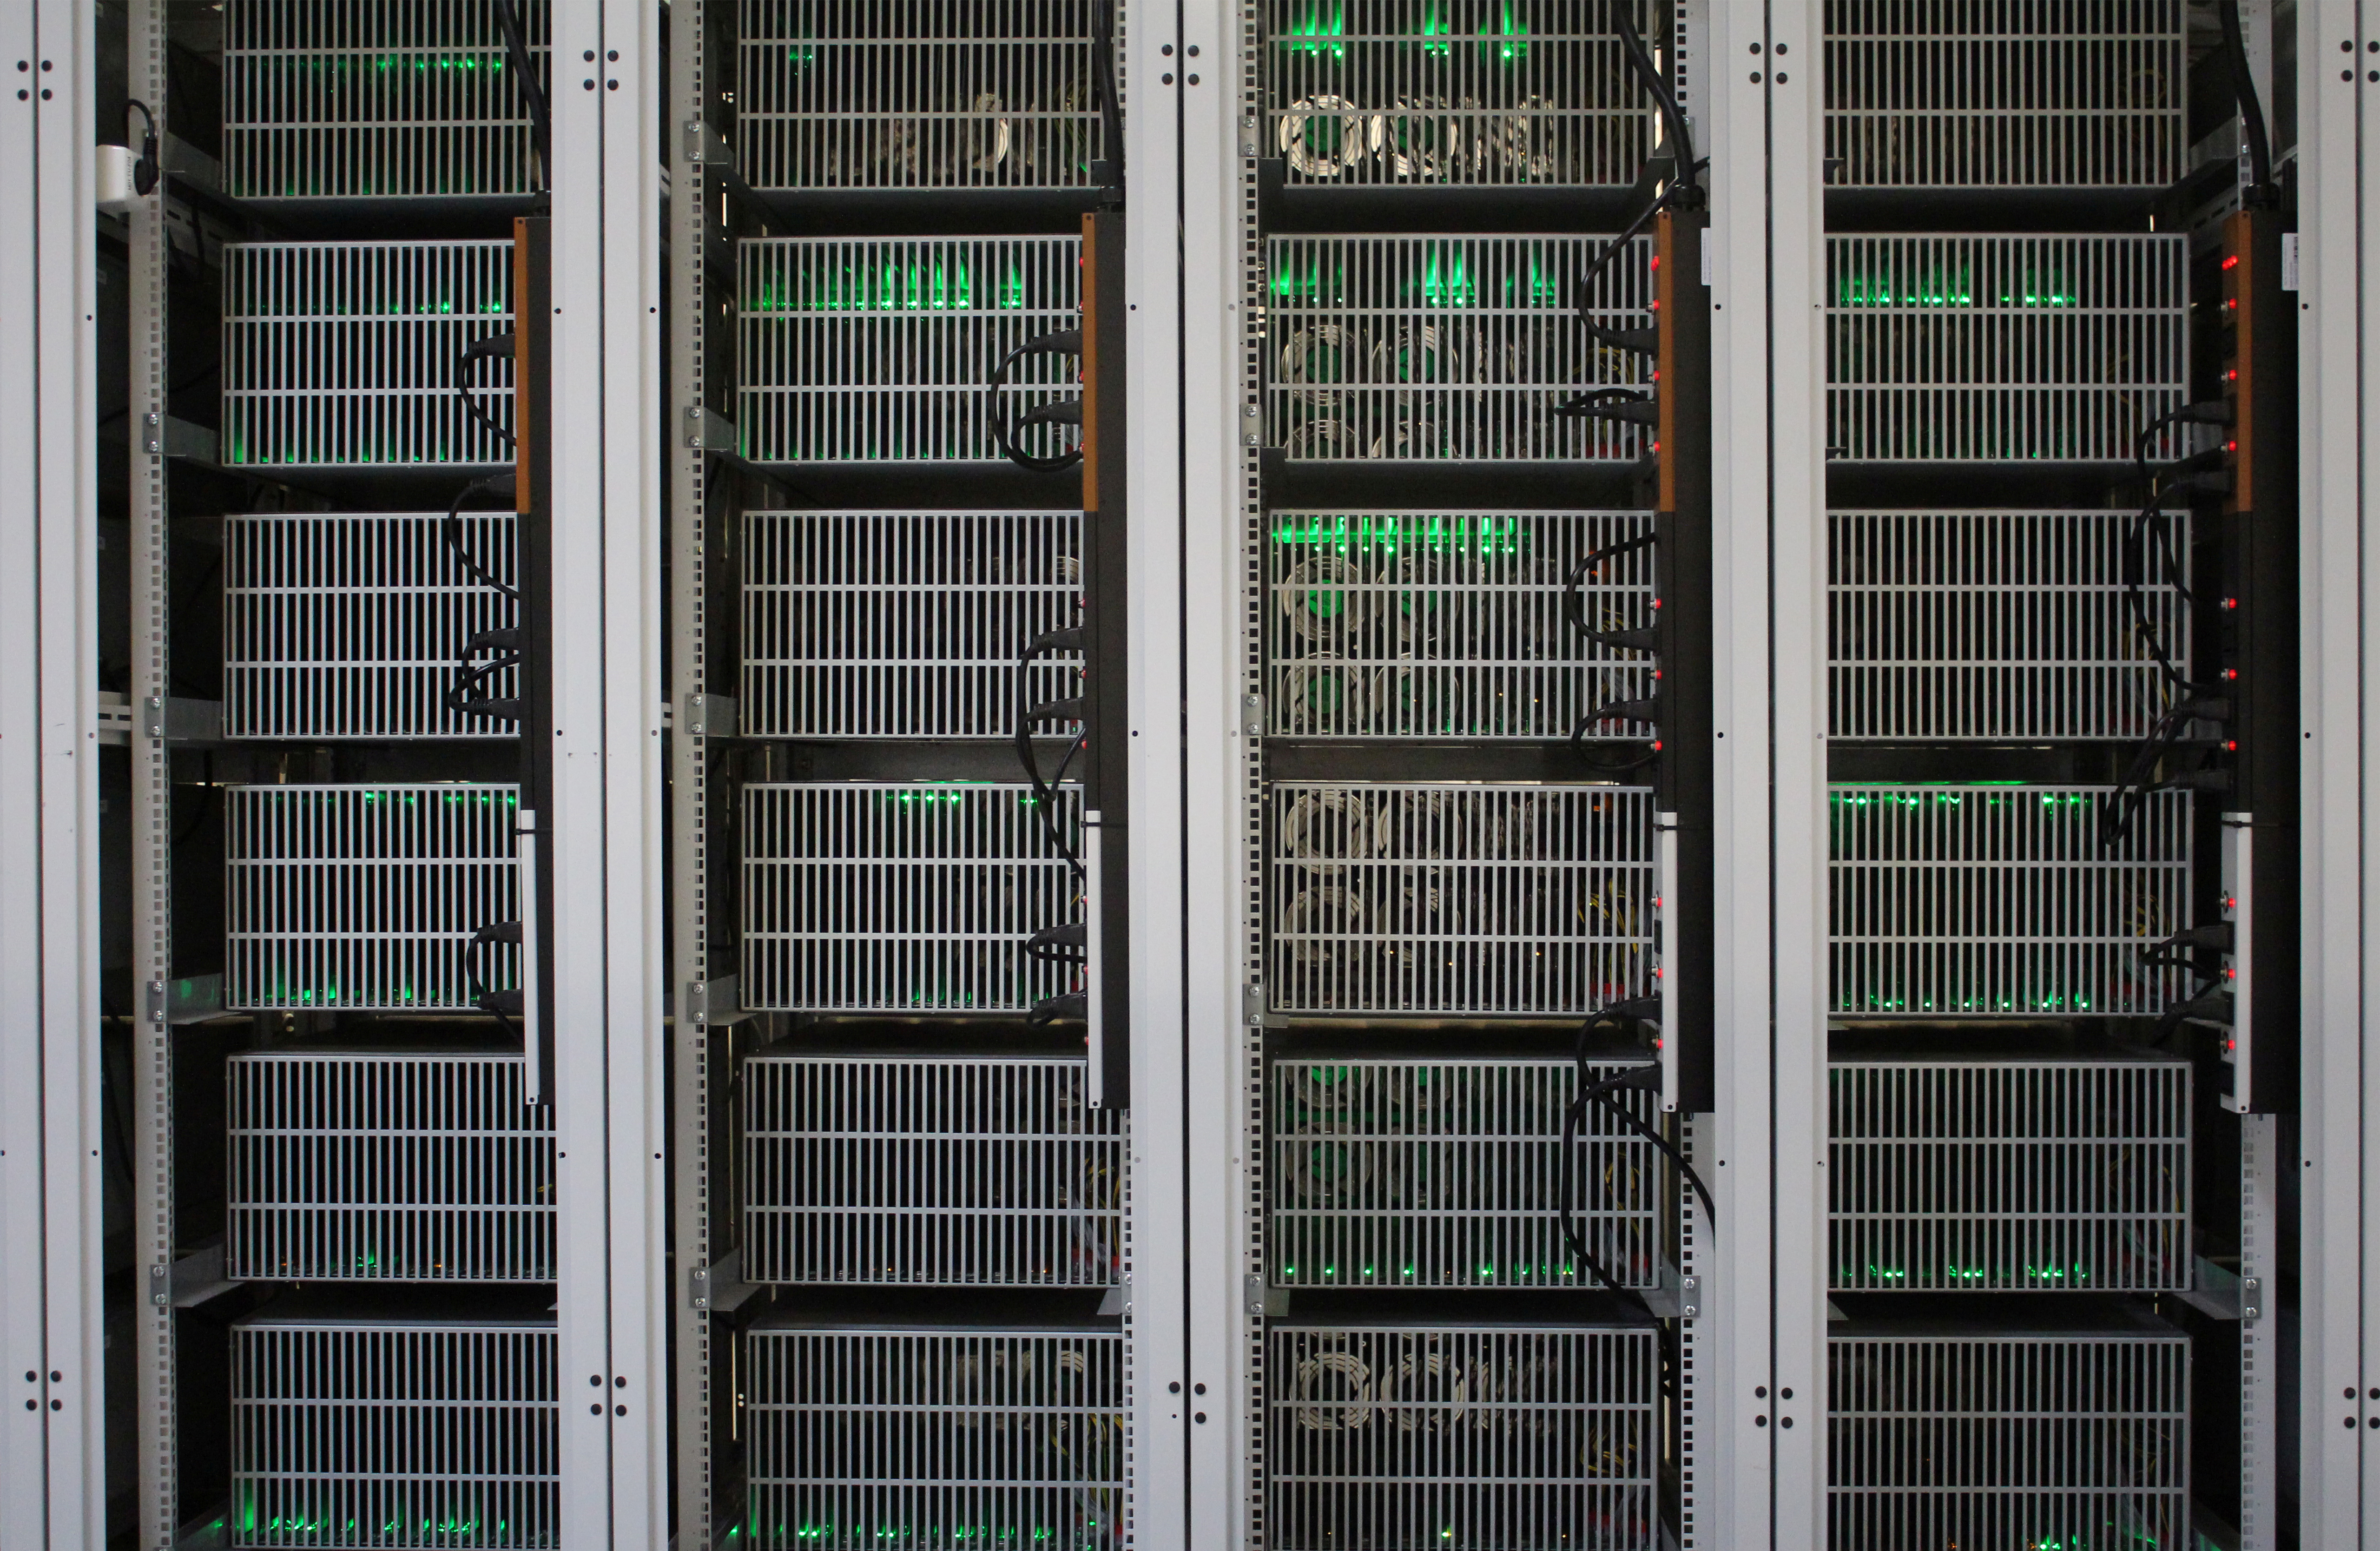 Bitcoin mining computers are pictured in Bitfury's mining farm near Keflavik, Iceland, June 7, 2016. Picture taken June 7, 2016. REUTERS/Jemima Kelly/File Photo